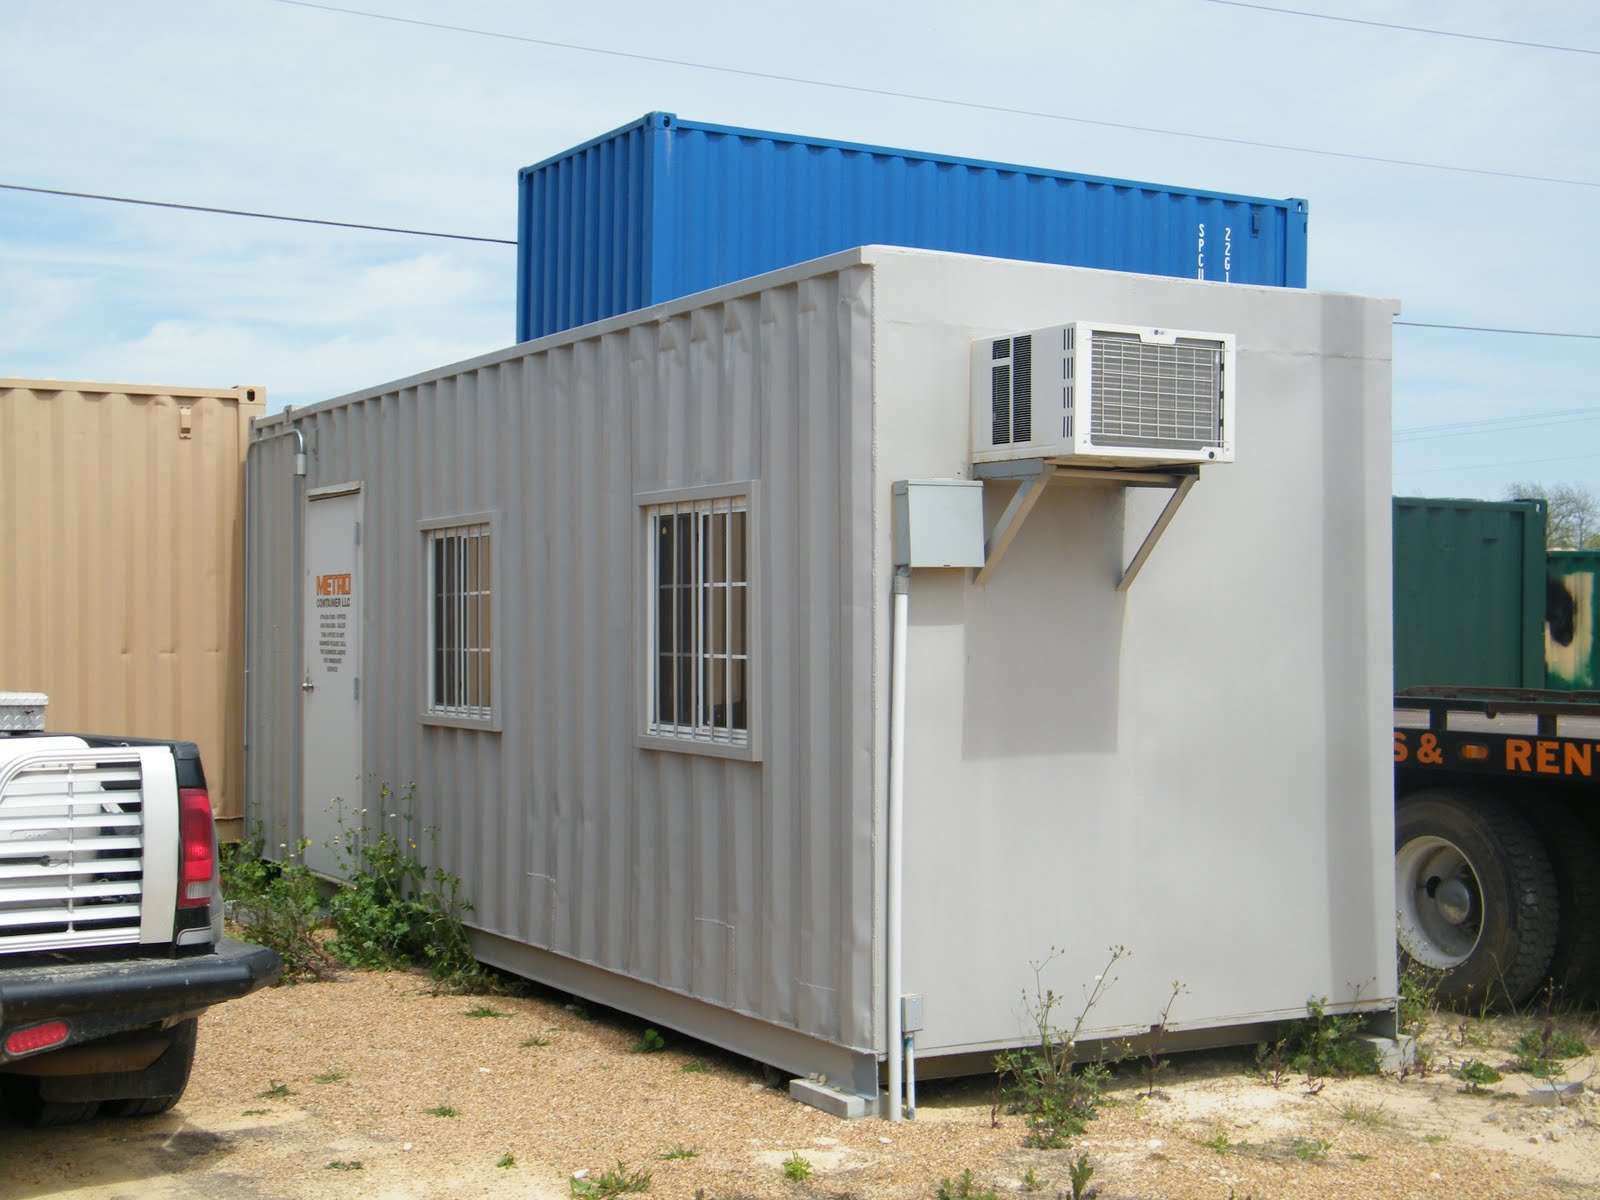 Texas container homes jesse c smith jr consultant latest visit to metro container - Container home builders in texas ...